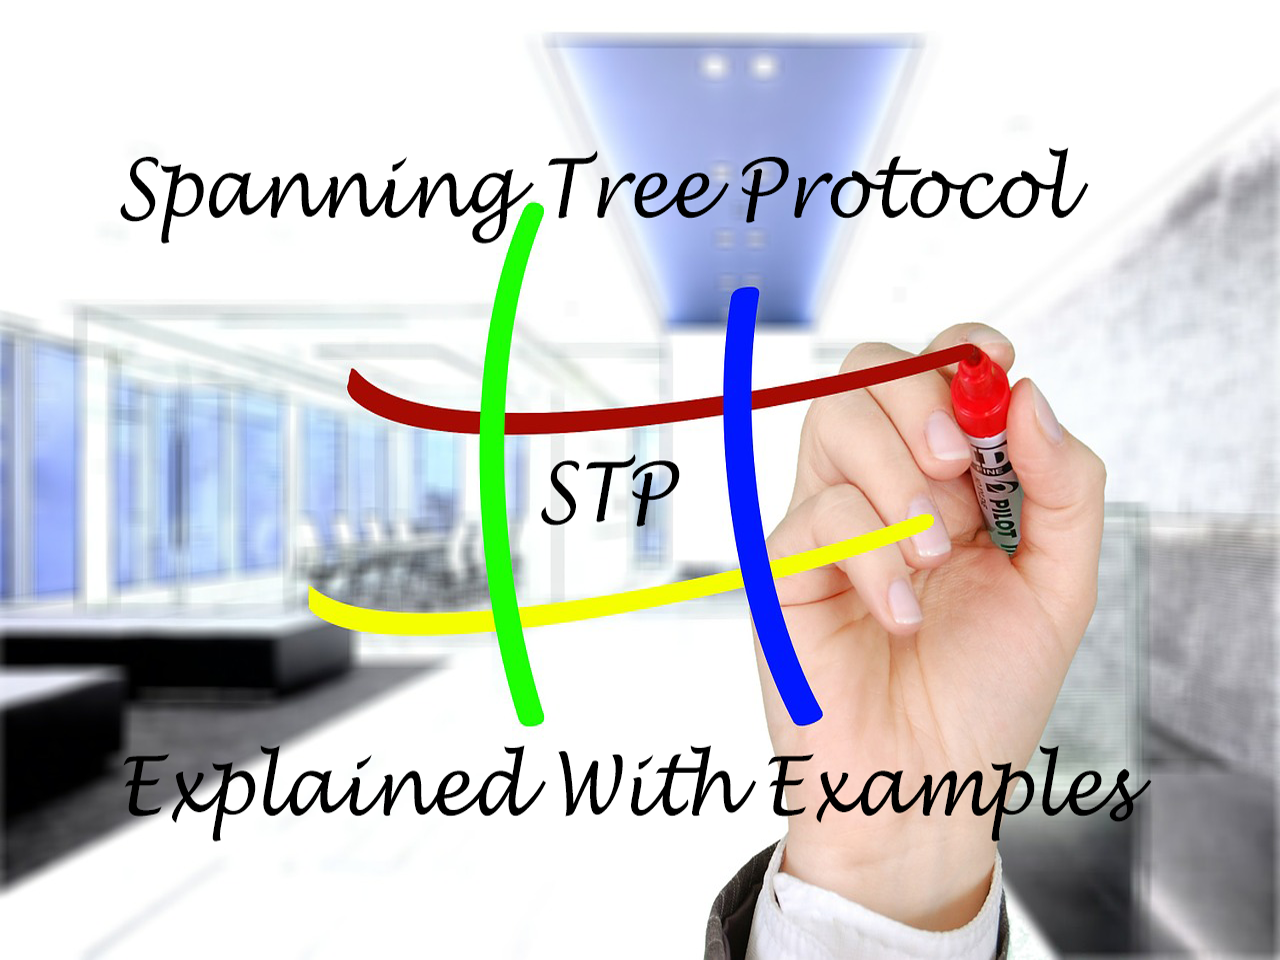 STP - Spanning Tree Protocol Explained With Examples